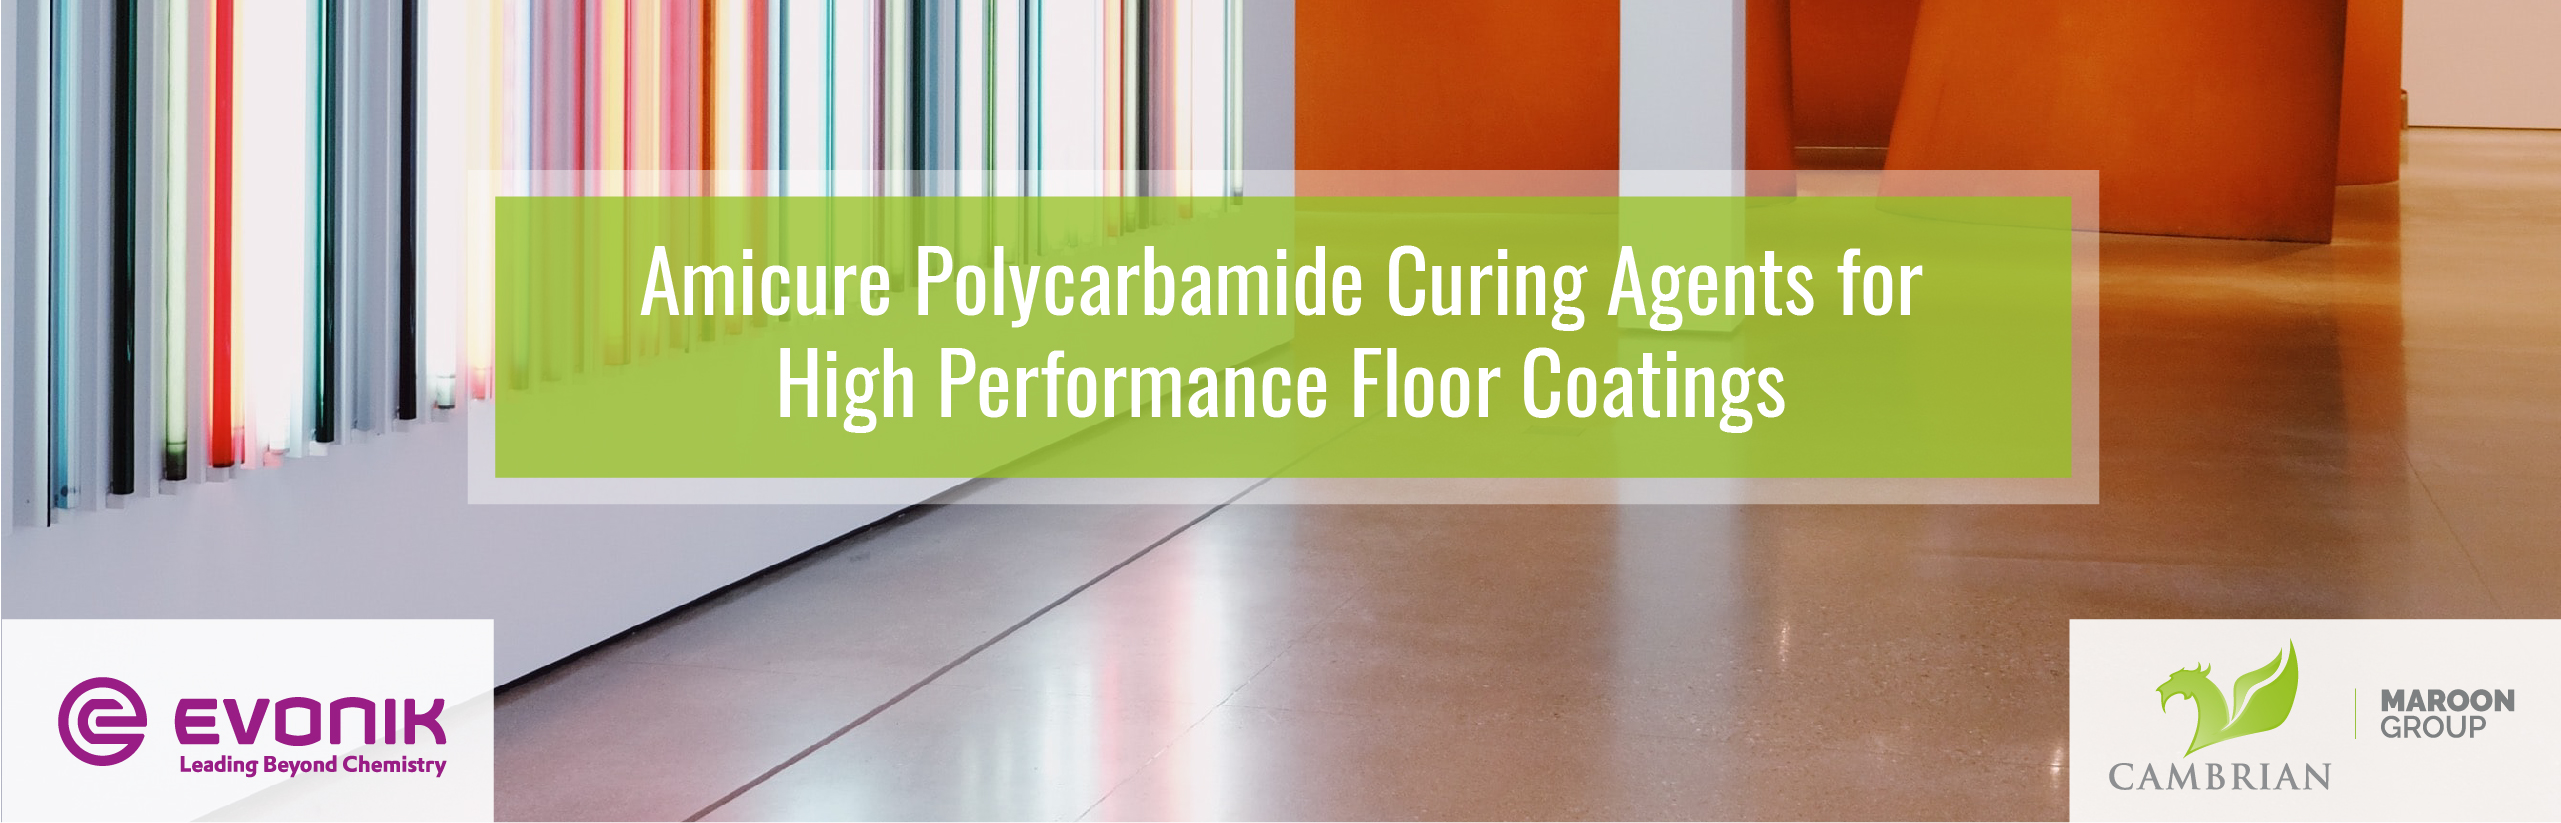 Amicure Polycarbamide Curing Agents for High Performance Floor Coatings